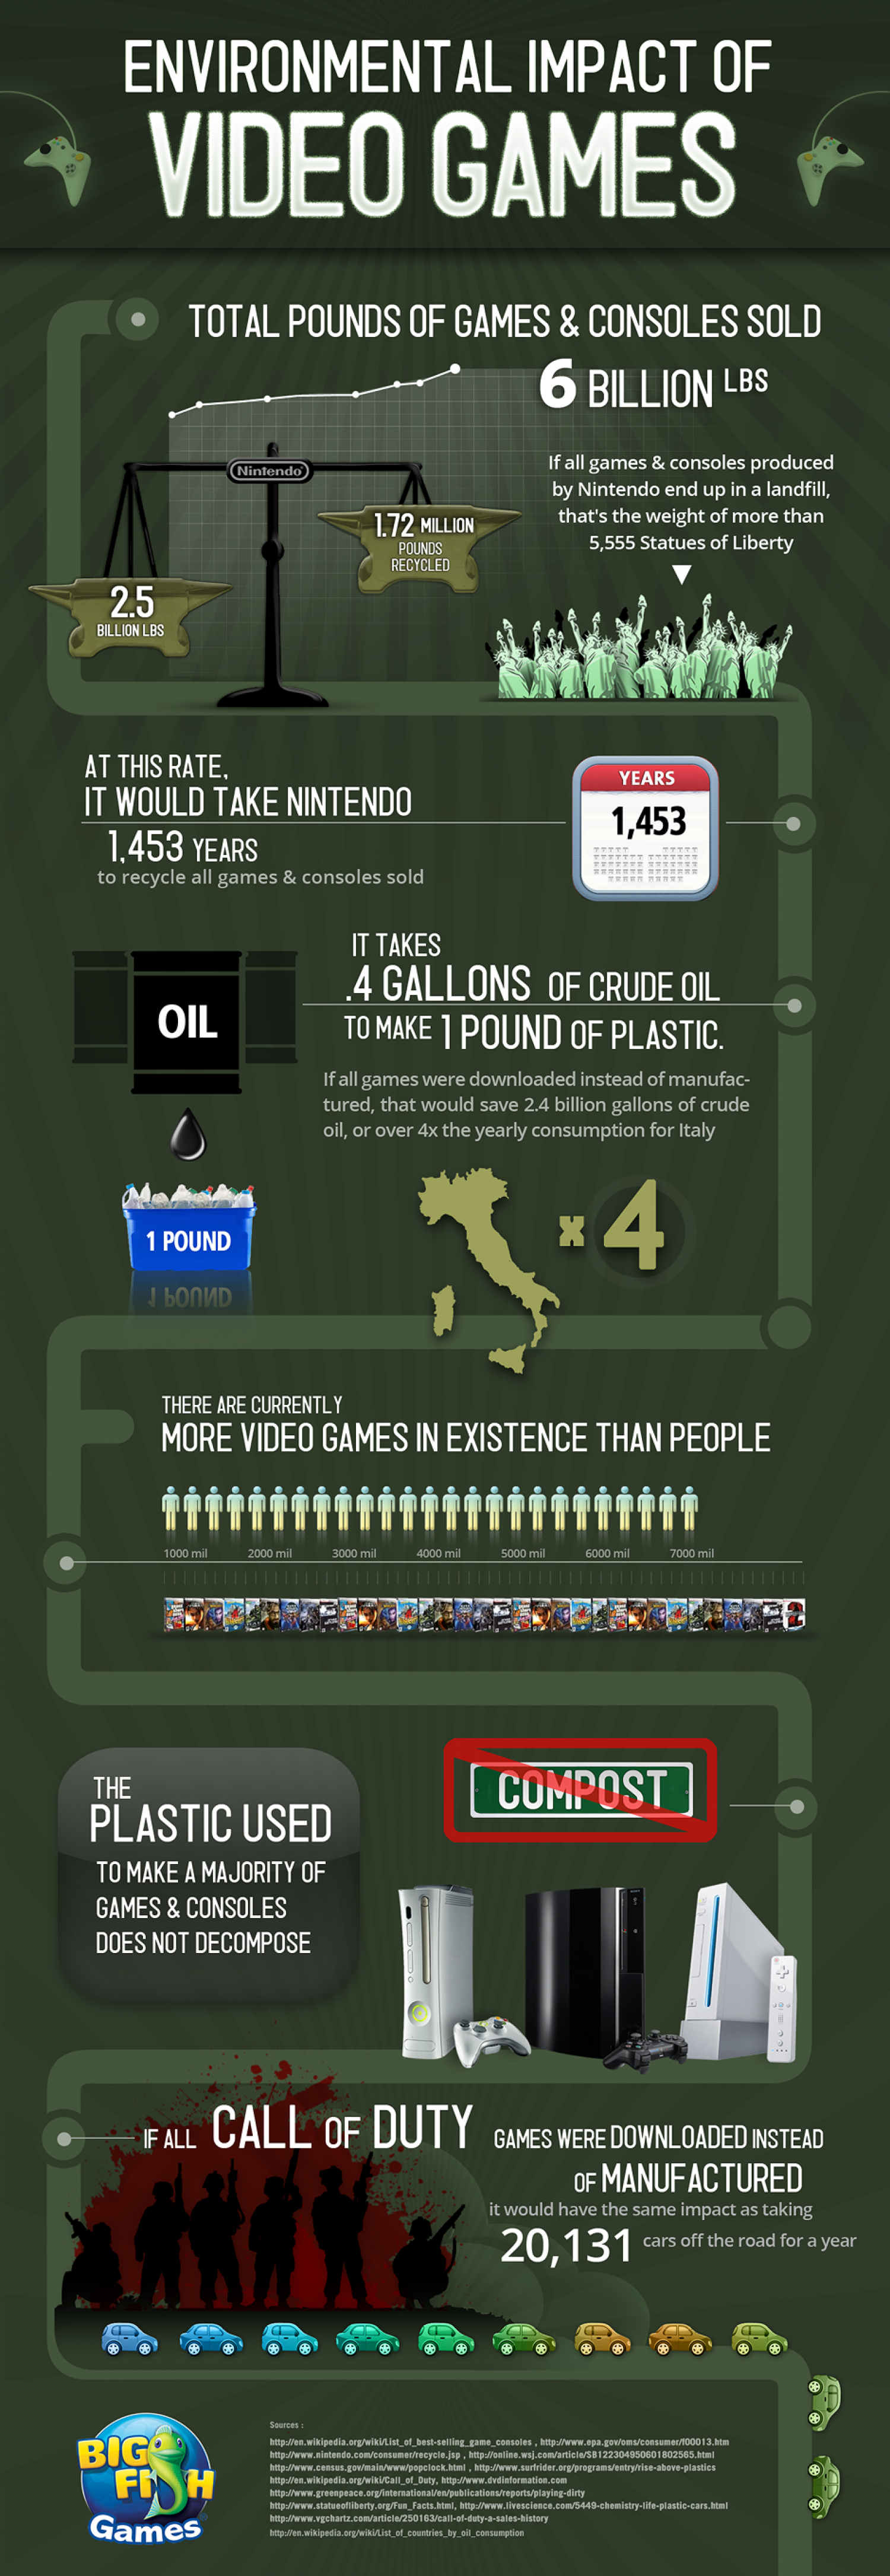 The Environmental Impact of Video Games Infographic